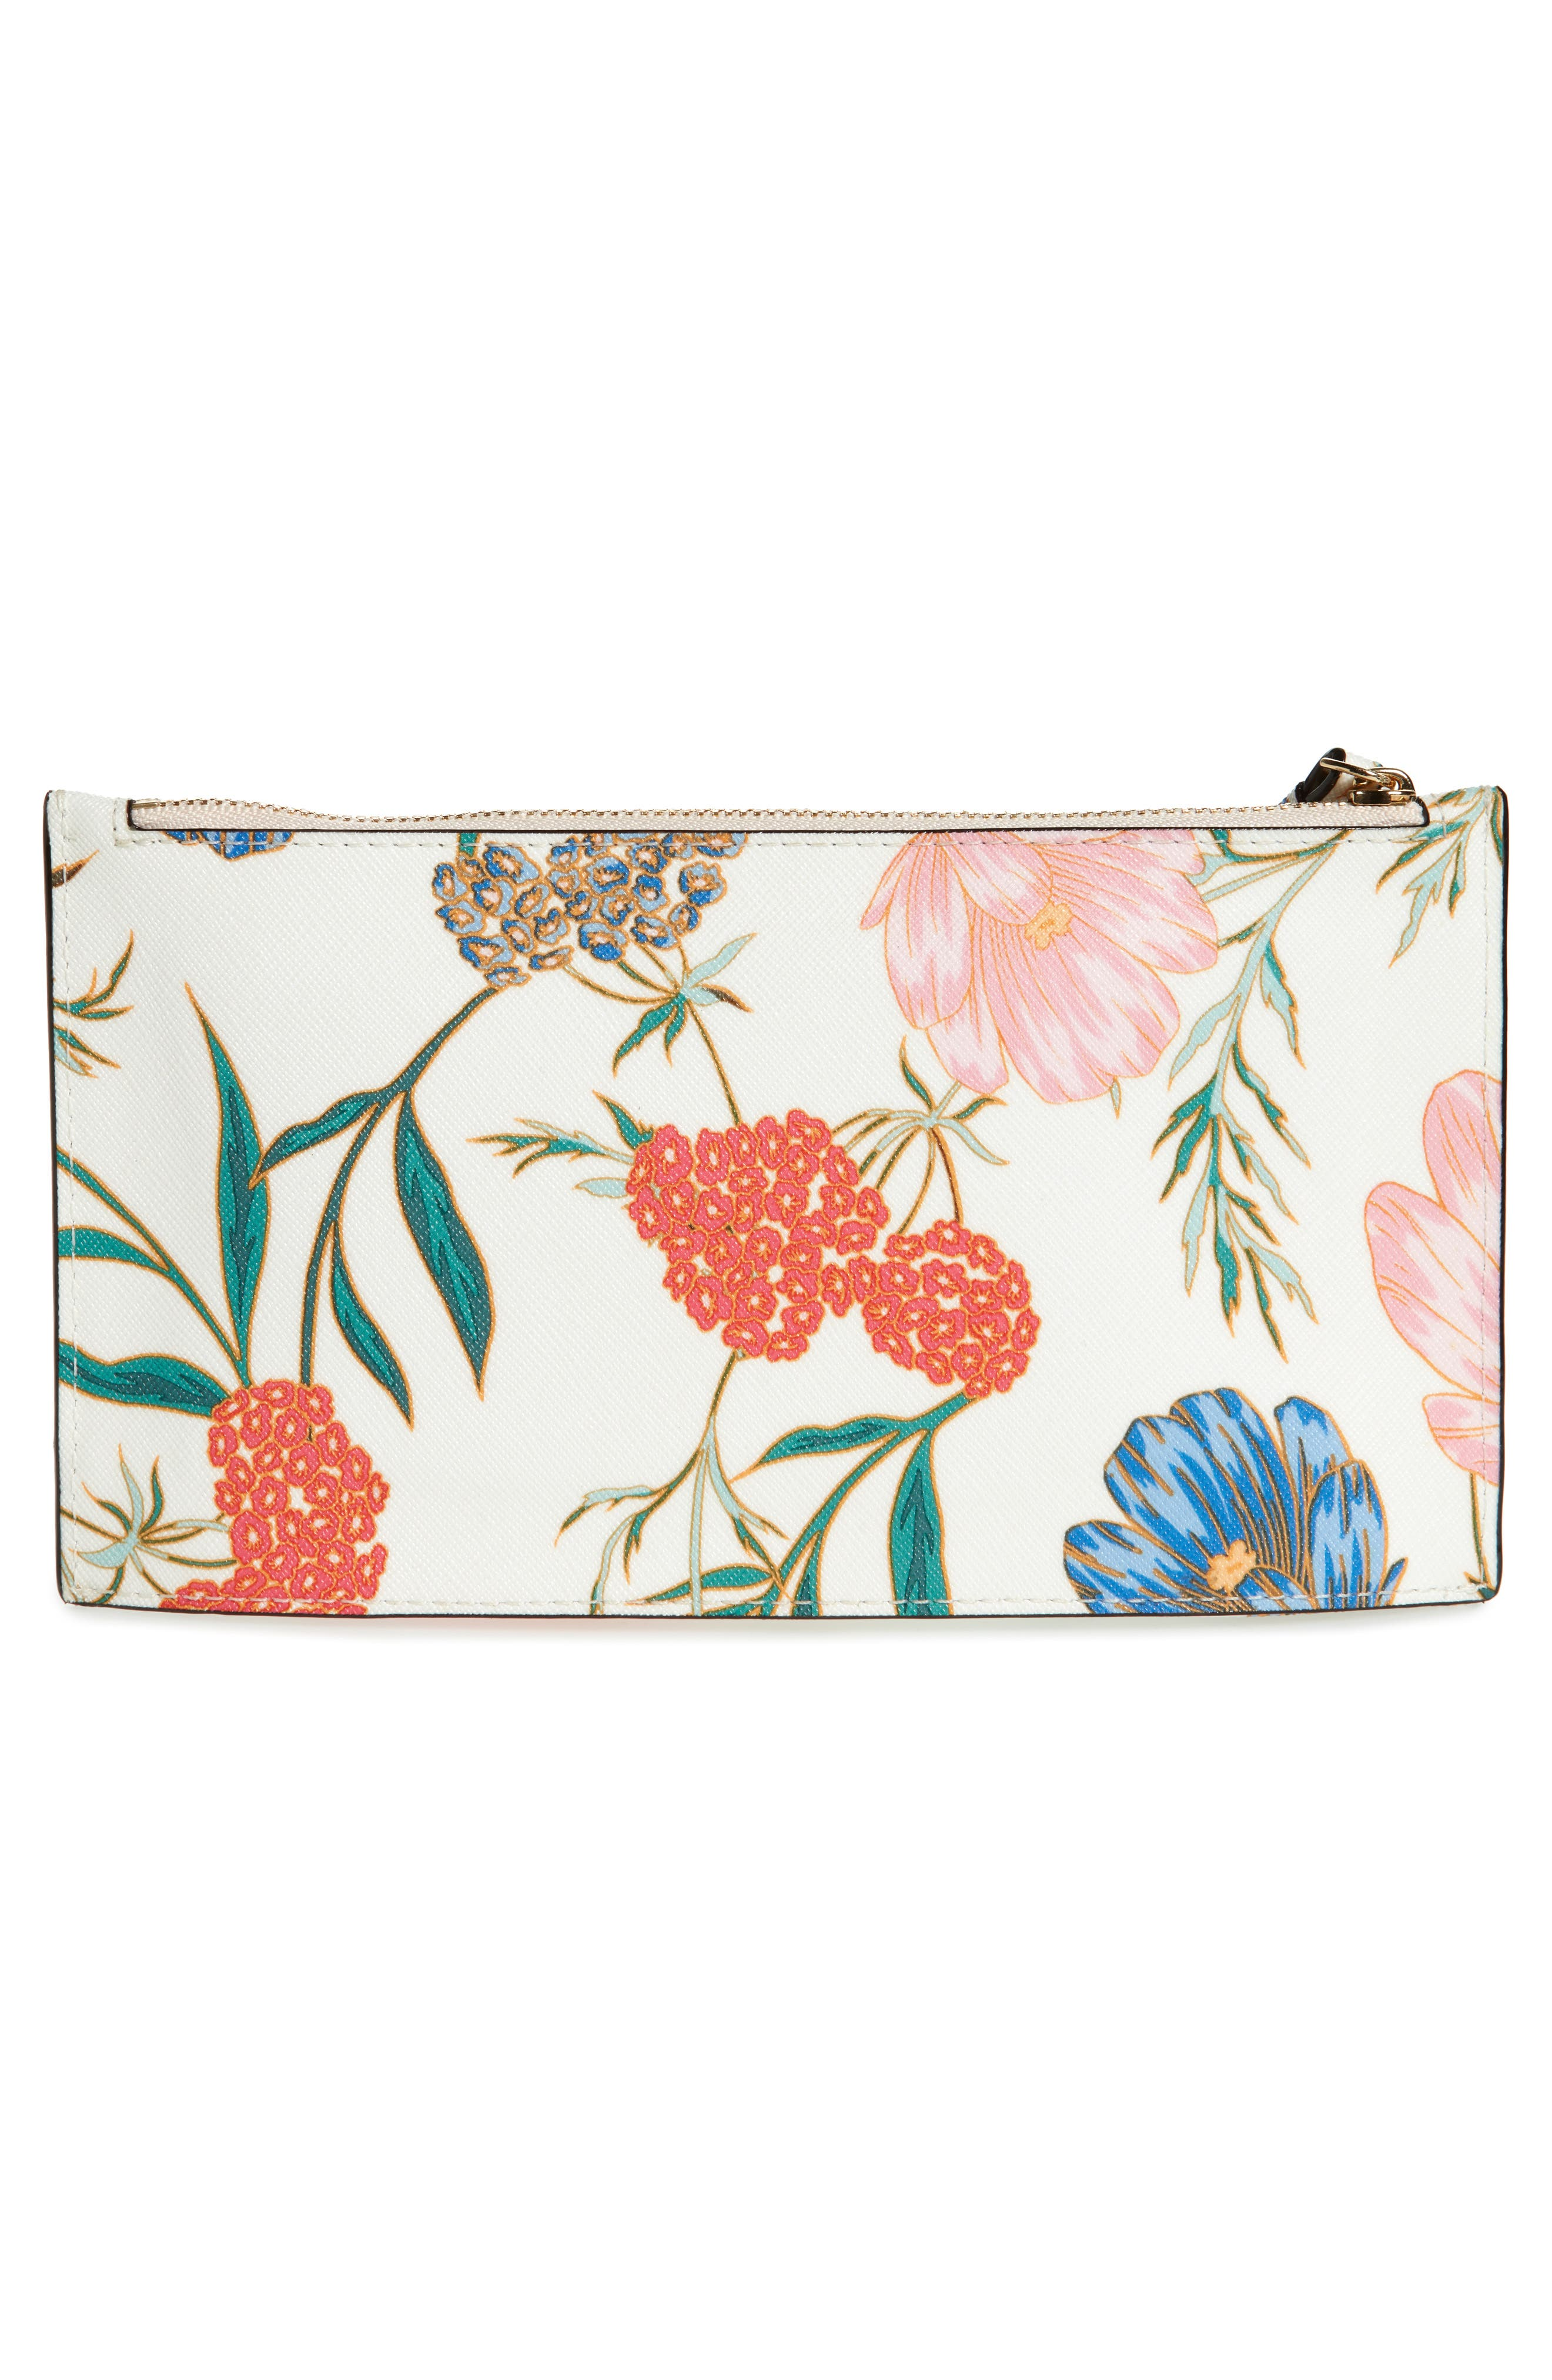 cameron street blossom ariah coated canvas pouch,                             Alternate thumbnail 3, color,                             100